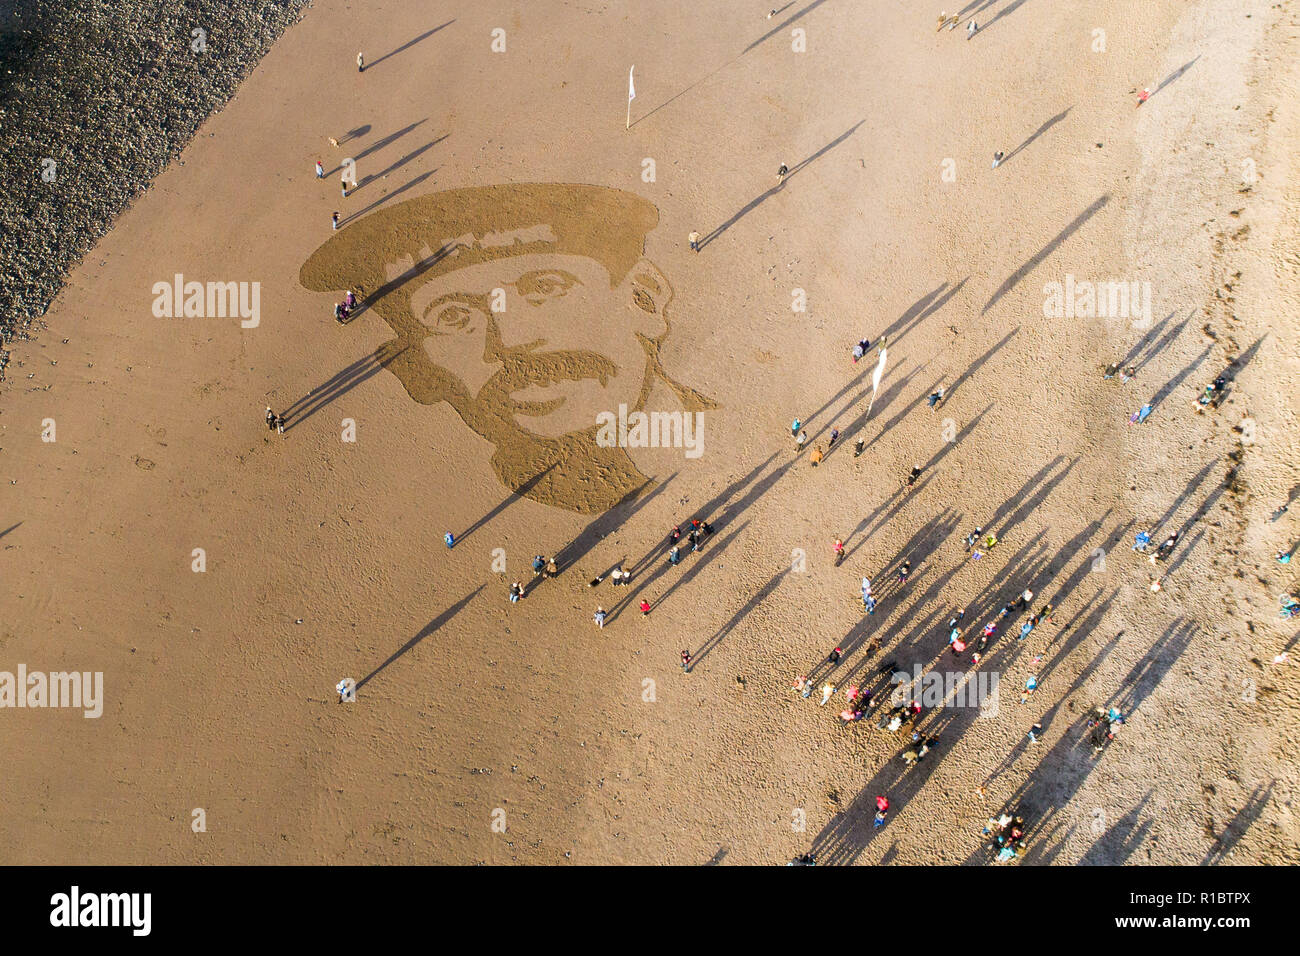 Ynyslas Wales UK, 11/11/2018.